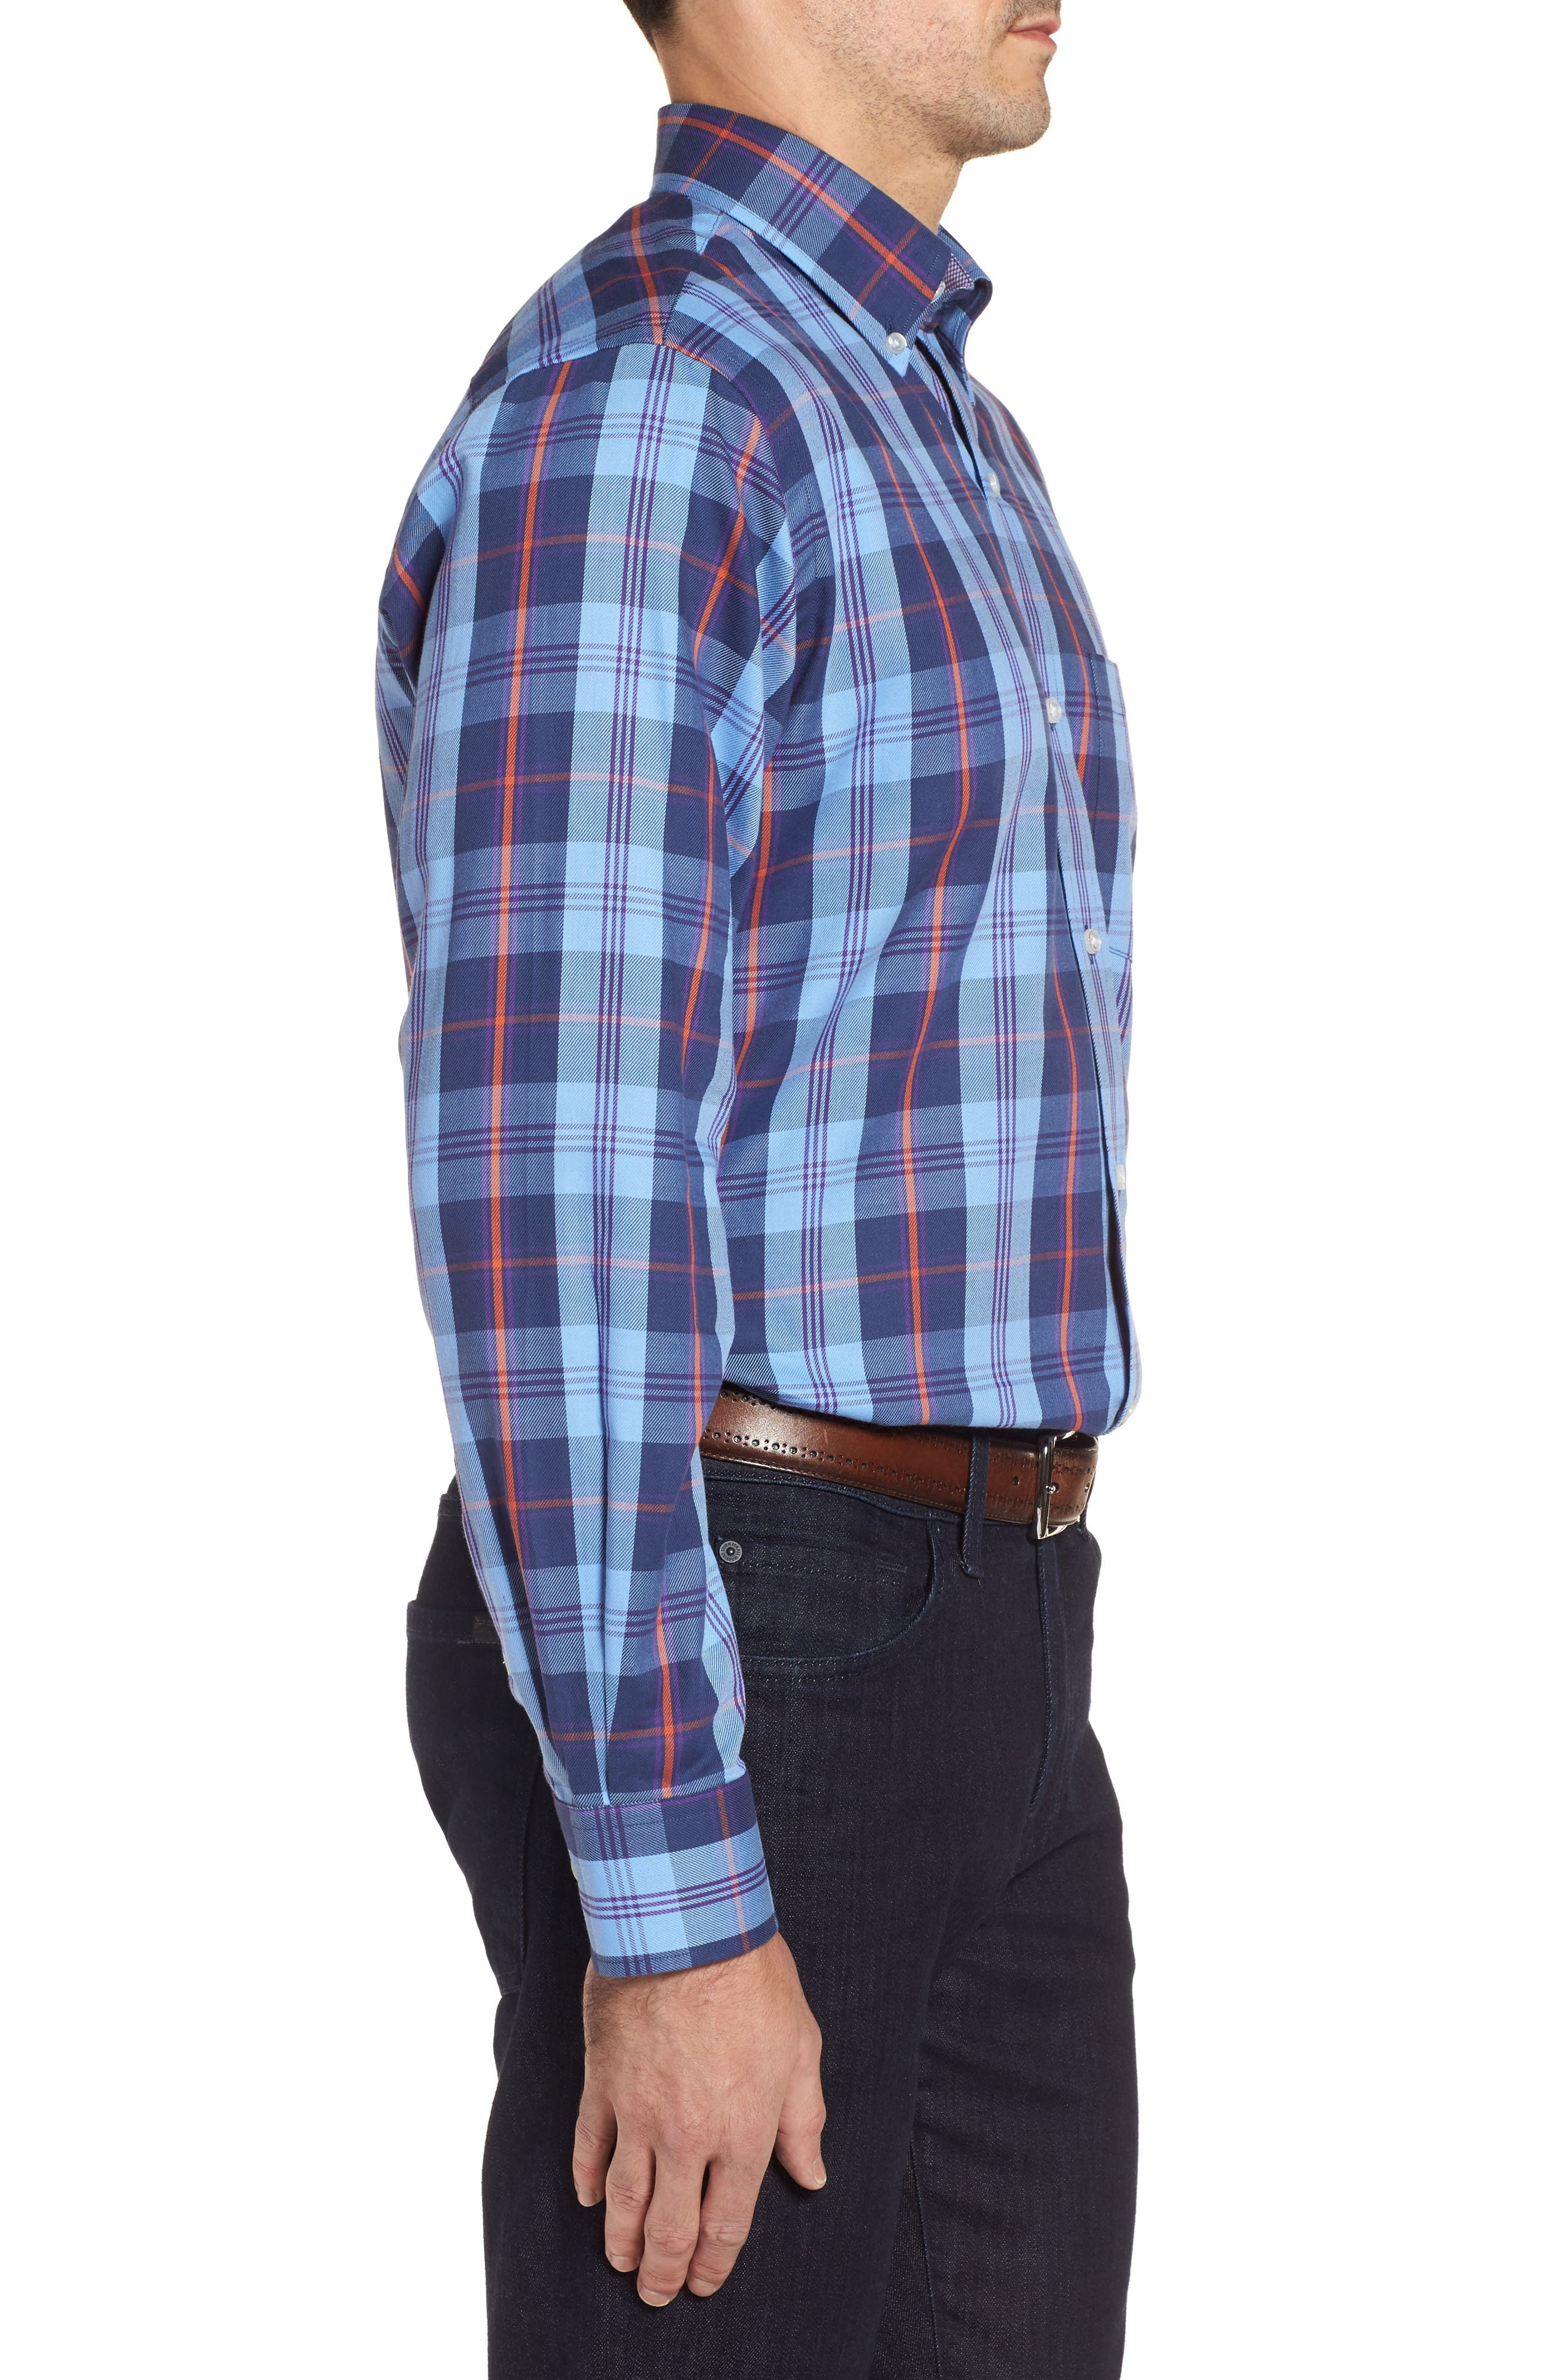 Delcambre Plaid Twill Sport Shirt,                             Alternate thumbnail 3, color,